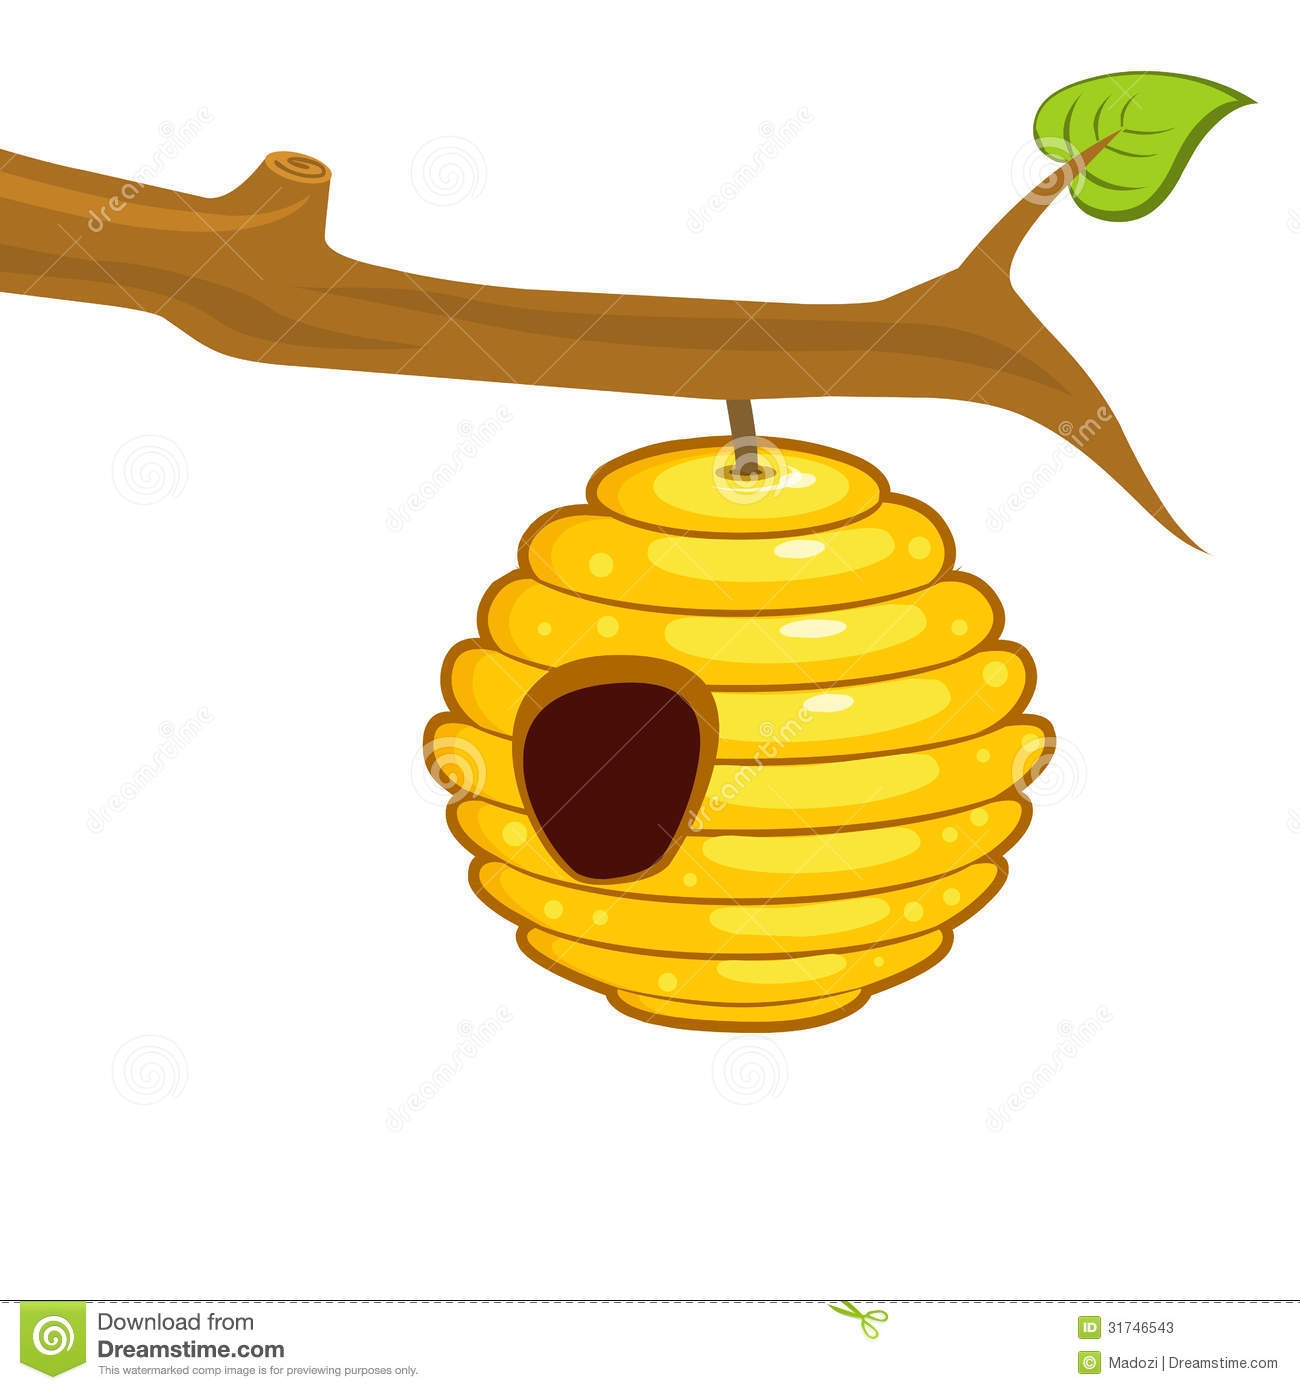 Beehive from tree clipart jpg transparent stock Beehive In Tree Clipart - clipartsgram.com jpg transparent stock